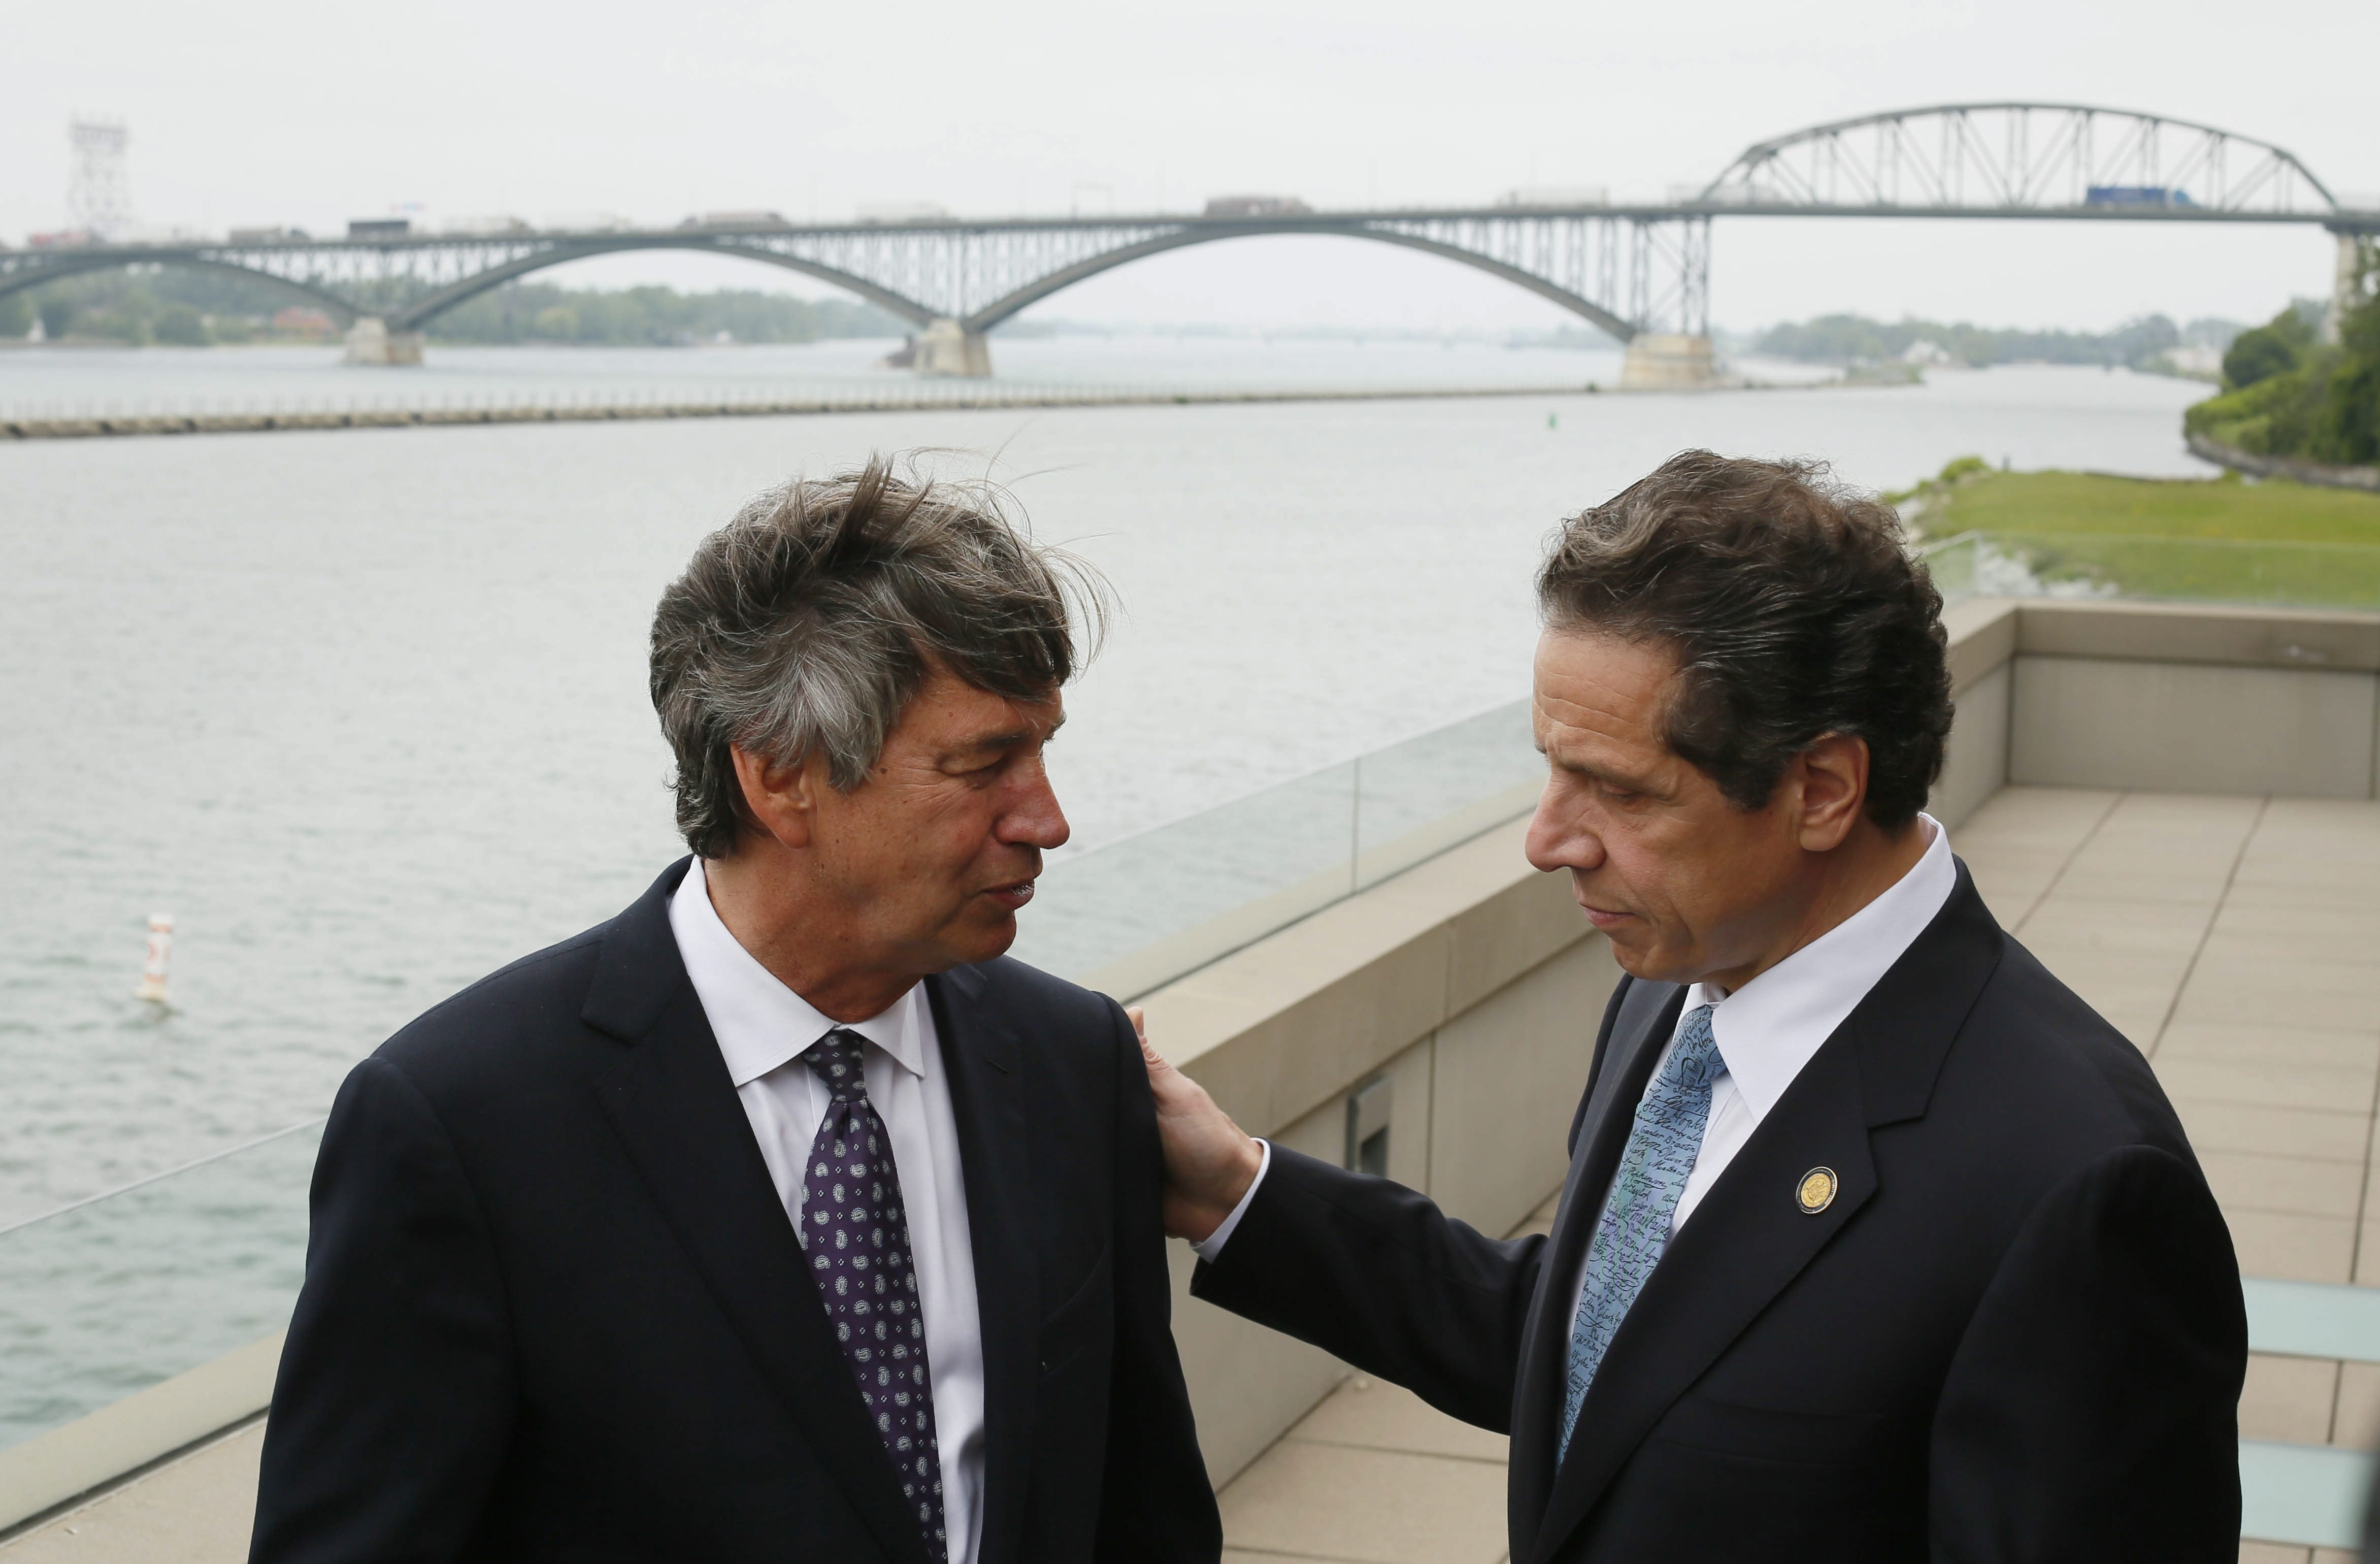 Canadian Ambassador Gary Doer, left, and New York Gov. Andrew Cuomo chat following the announcement of an agreement between New York and Canada on the Peace Bridge, background, at the Frank Lloyd Wright Boathouse at the West Side Rowing Club, Wednesday, June 26, 2013. (Derek Gee/Buffalo News)